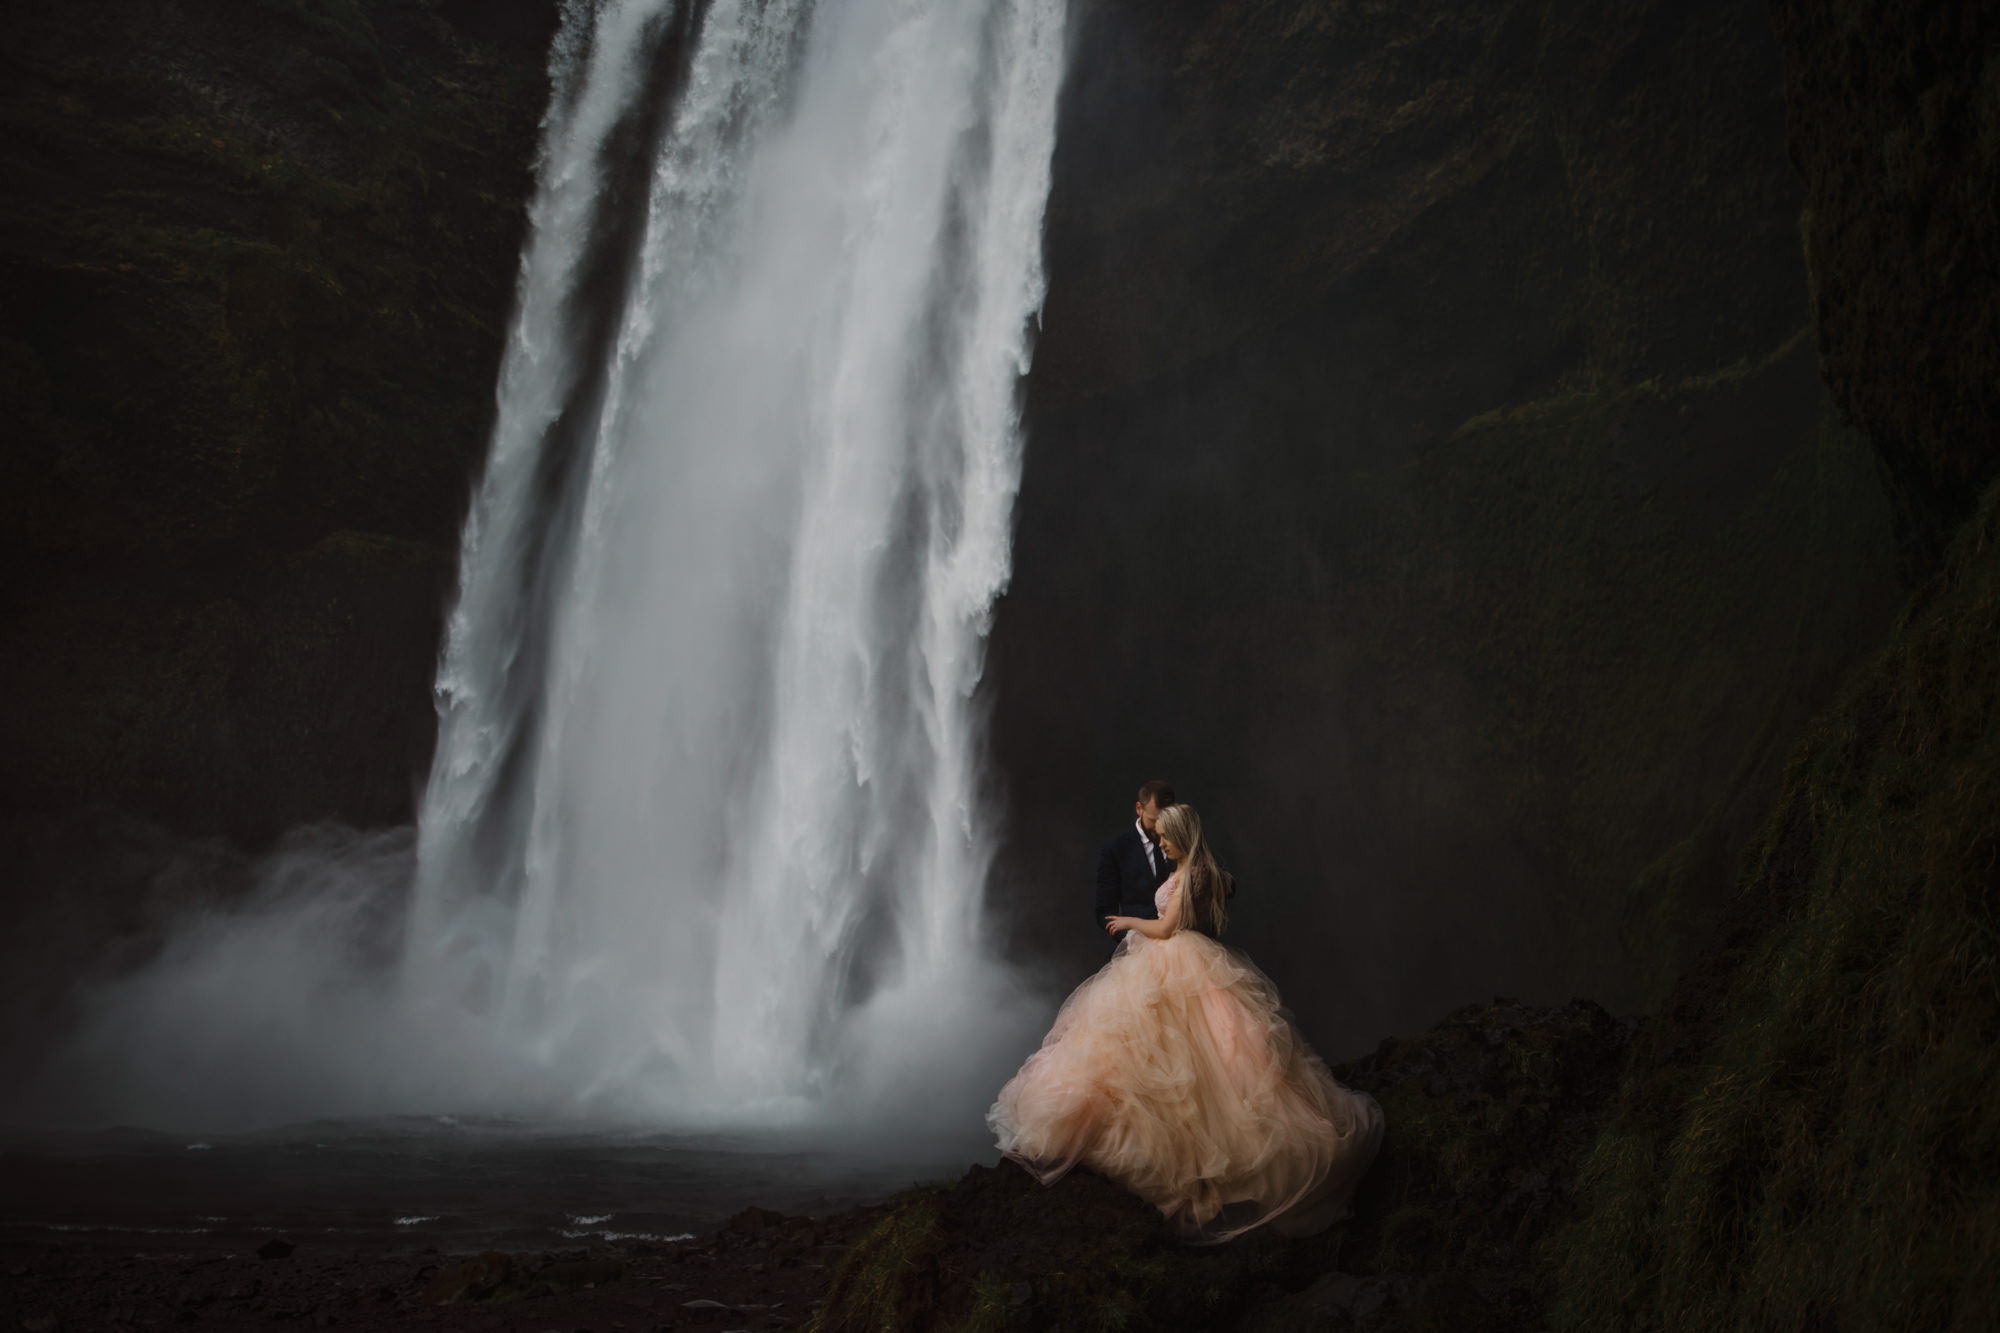 couple-together-at-waterfall-bride-in-pink-ruffled-ballgown-worlds-best-wedding-photos-gabe-mcclintock-calgary-wedding-photographer